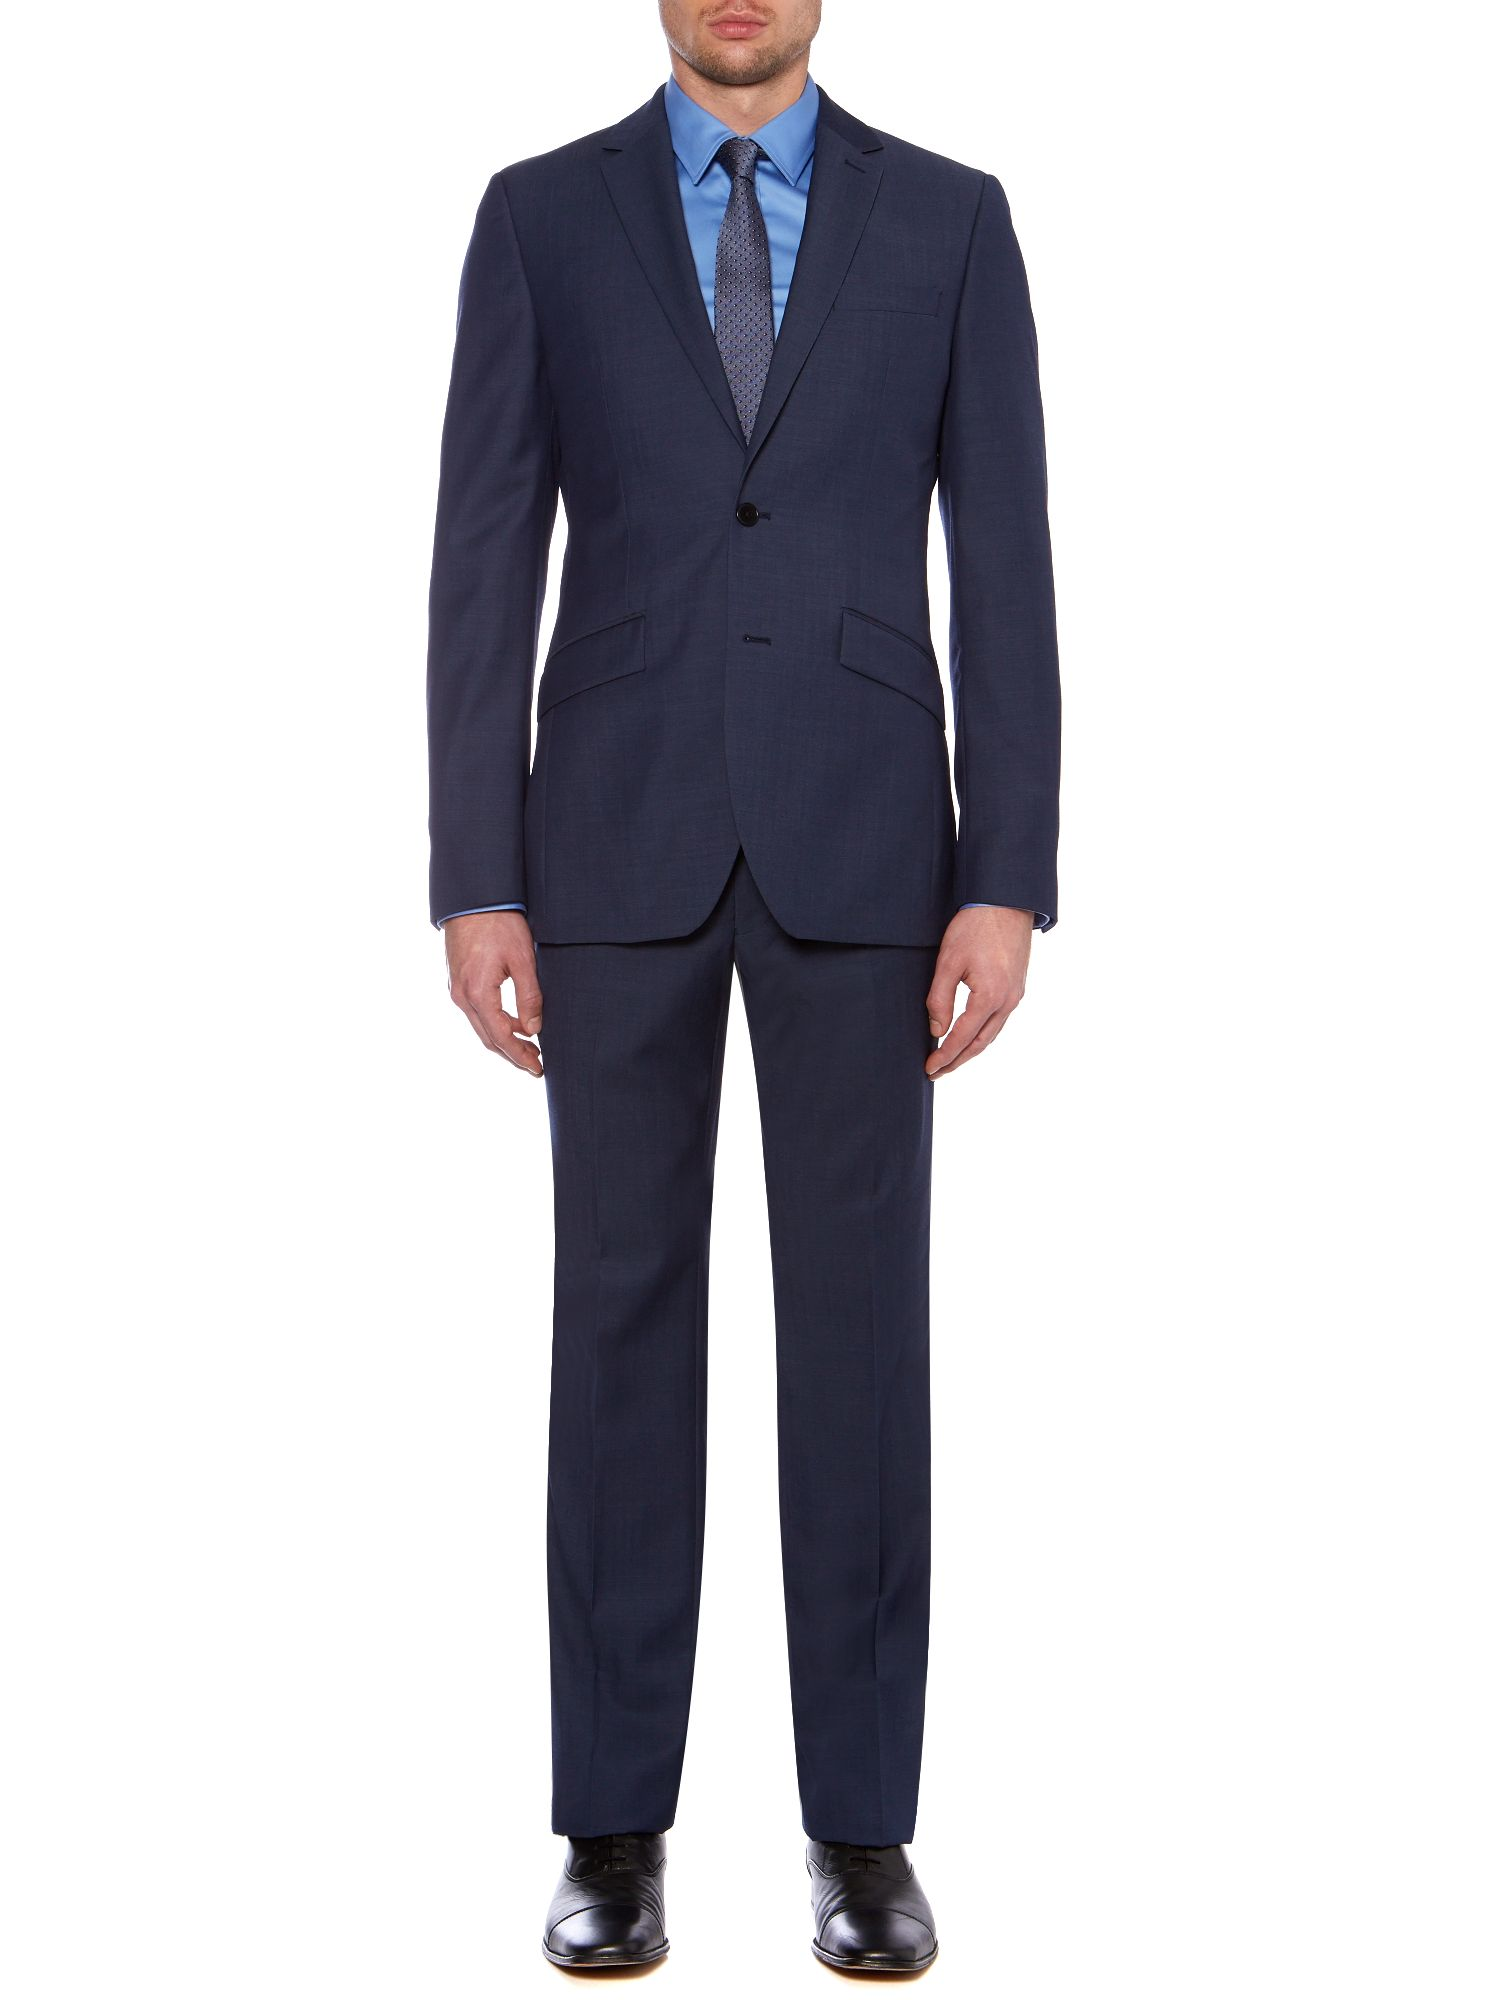 Byram twill travel suit